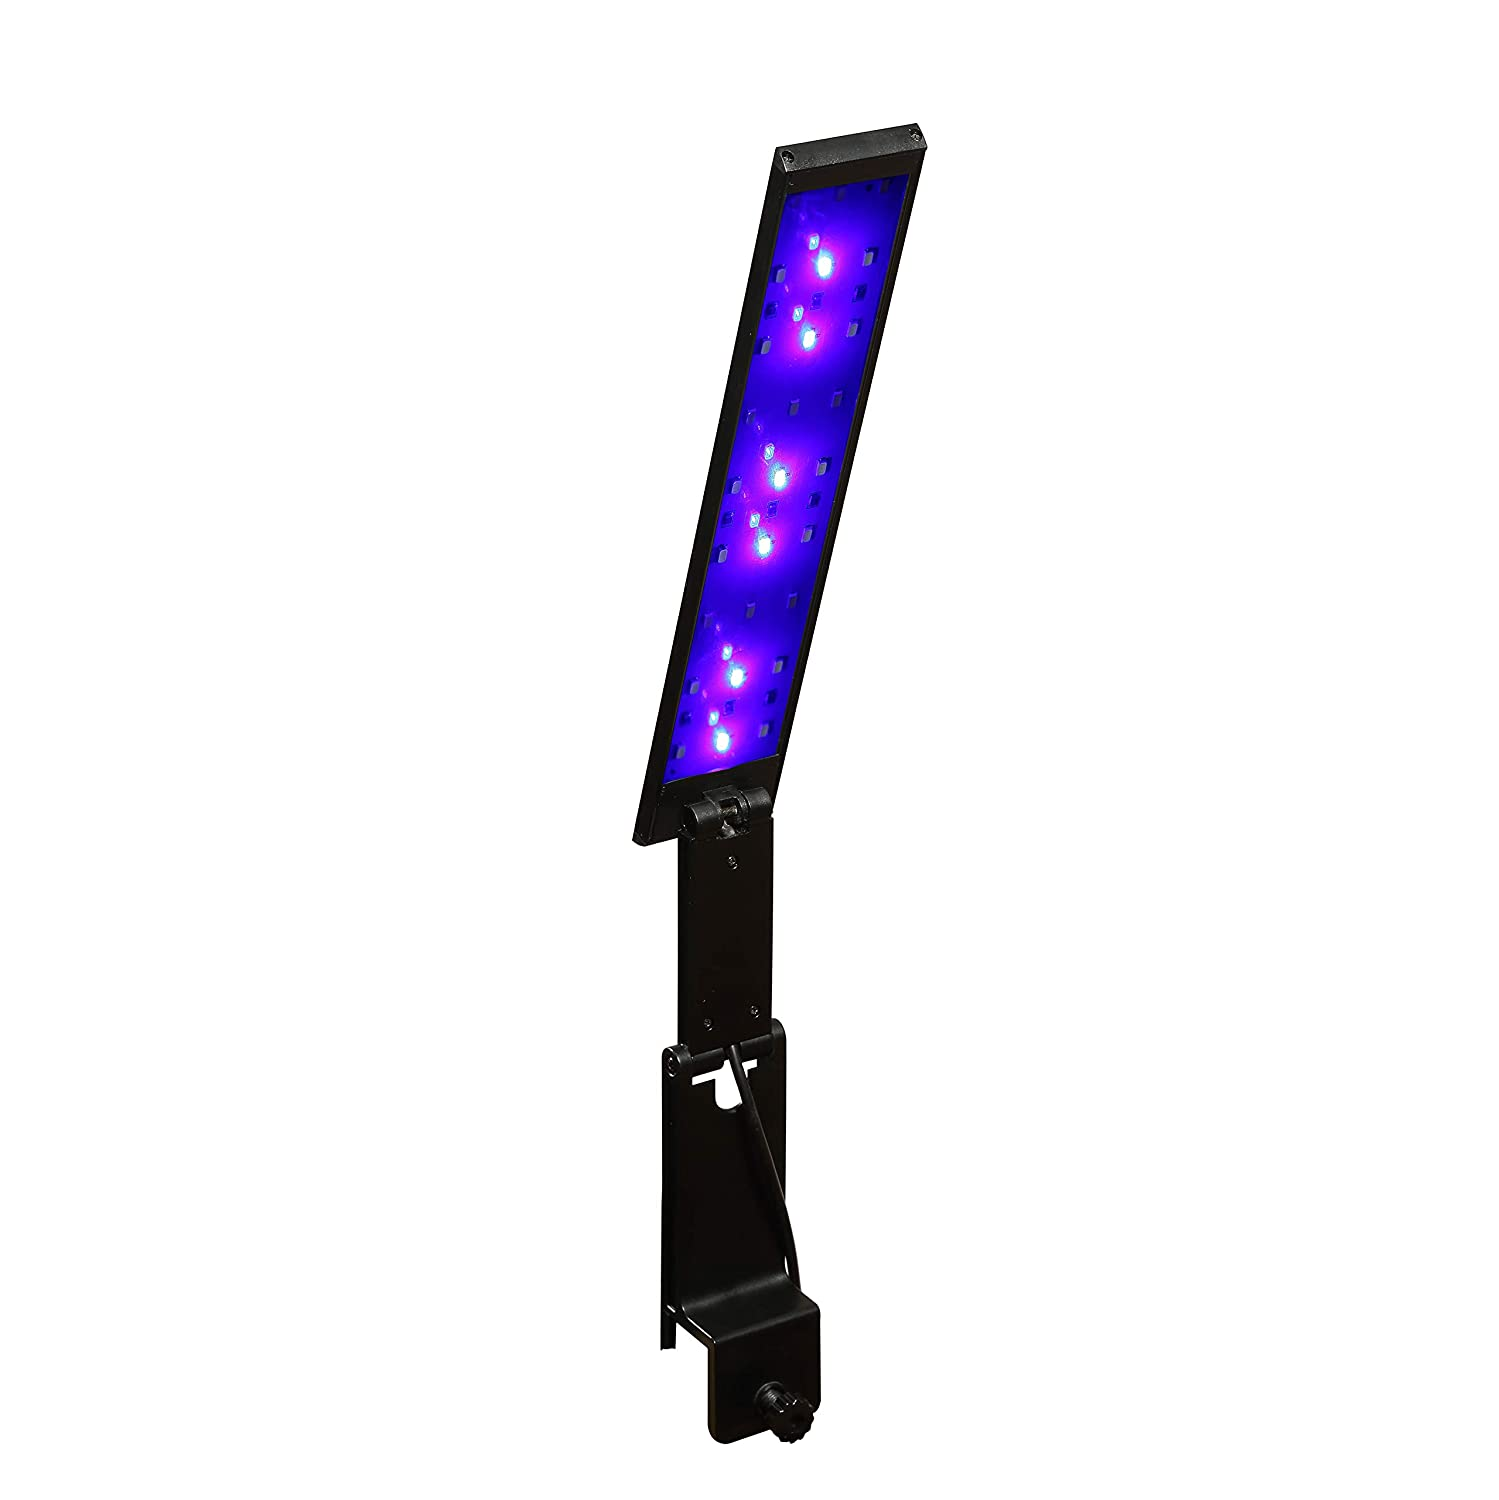 7W J-star Newest LED Aquarium Light with Dimming Modes bluee and White Light Aquarium Clip Light for Fish Tank Plant Growth Lamp (7W)